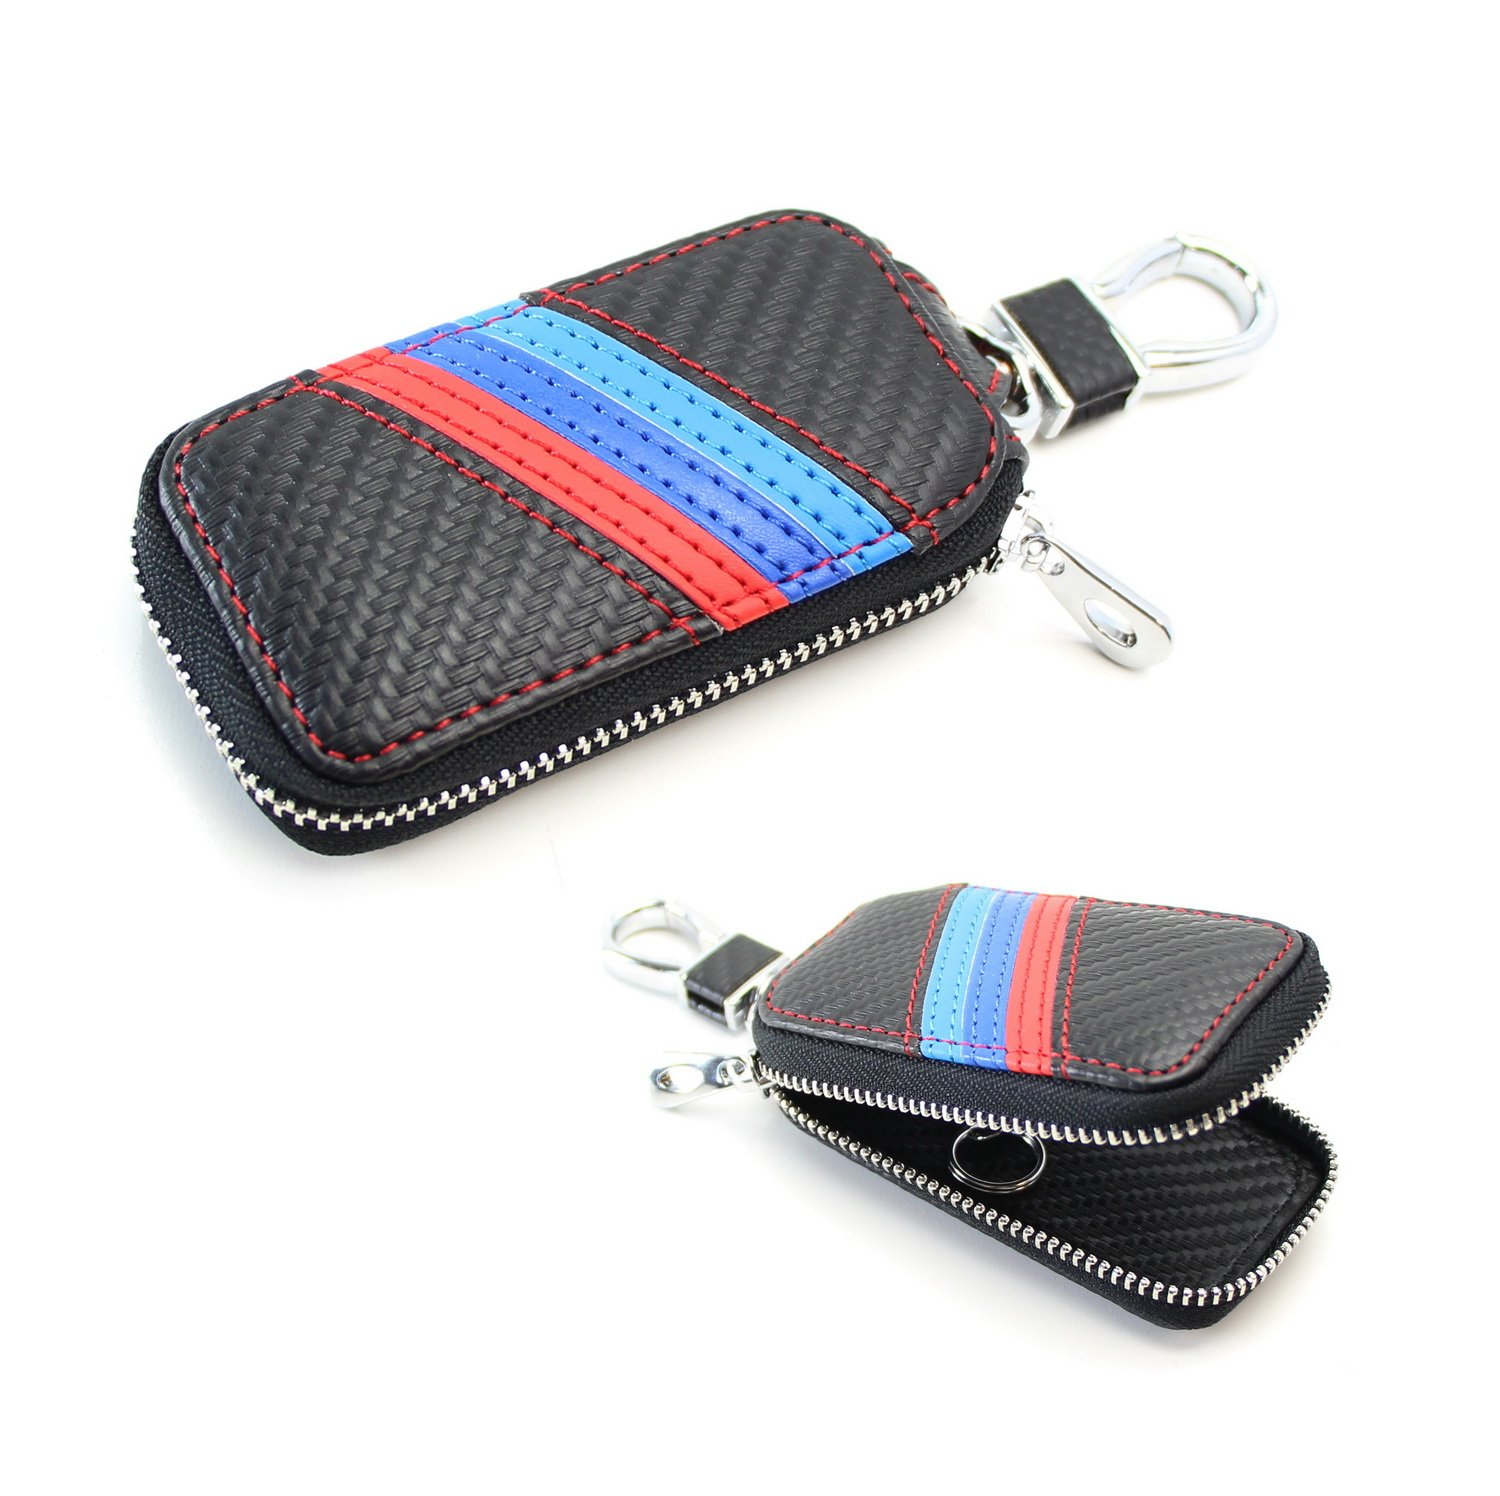 TANGSEN Smart Key Fob Case for BMW 2 5 6 7 Series X1 X2 X3 X5 X6 3 4 Button Keyless Entry Remote Personalized Protective Cover Plastic Carbon Fiber Pattern Blue Silicone